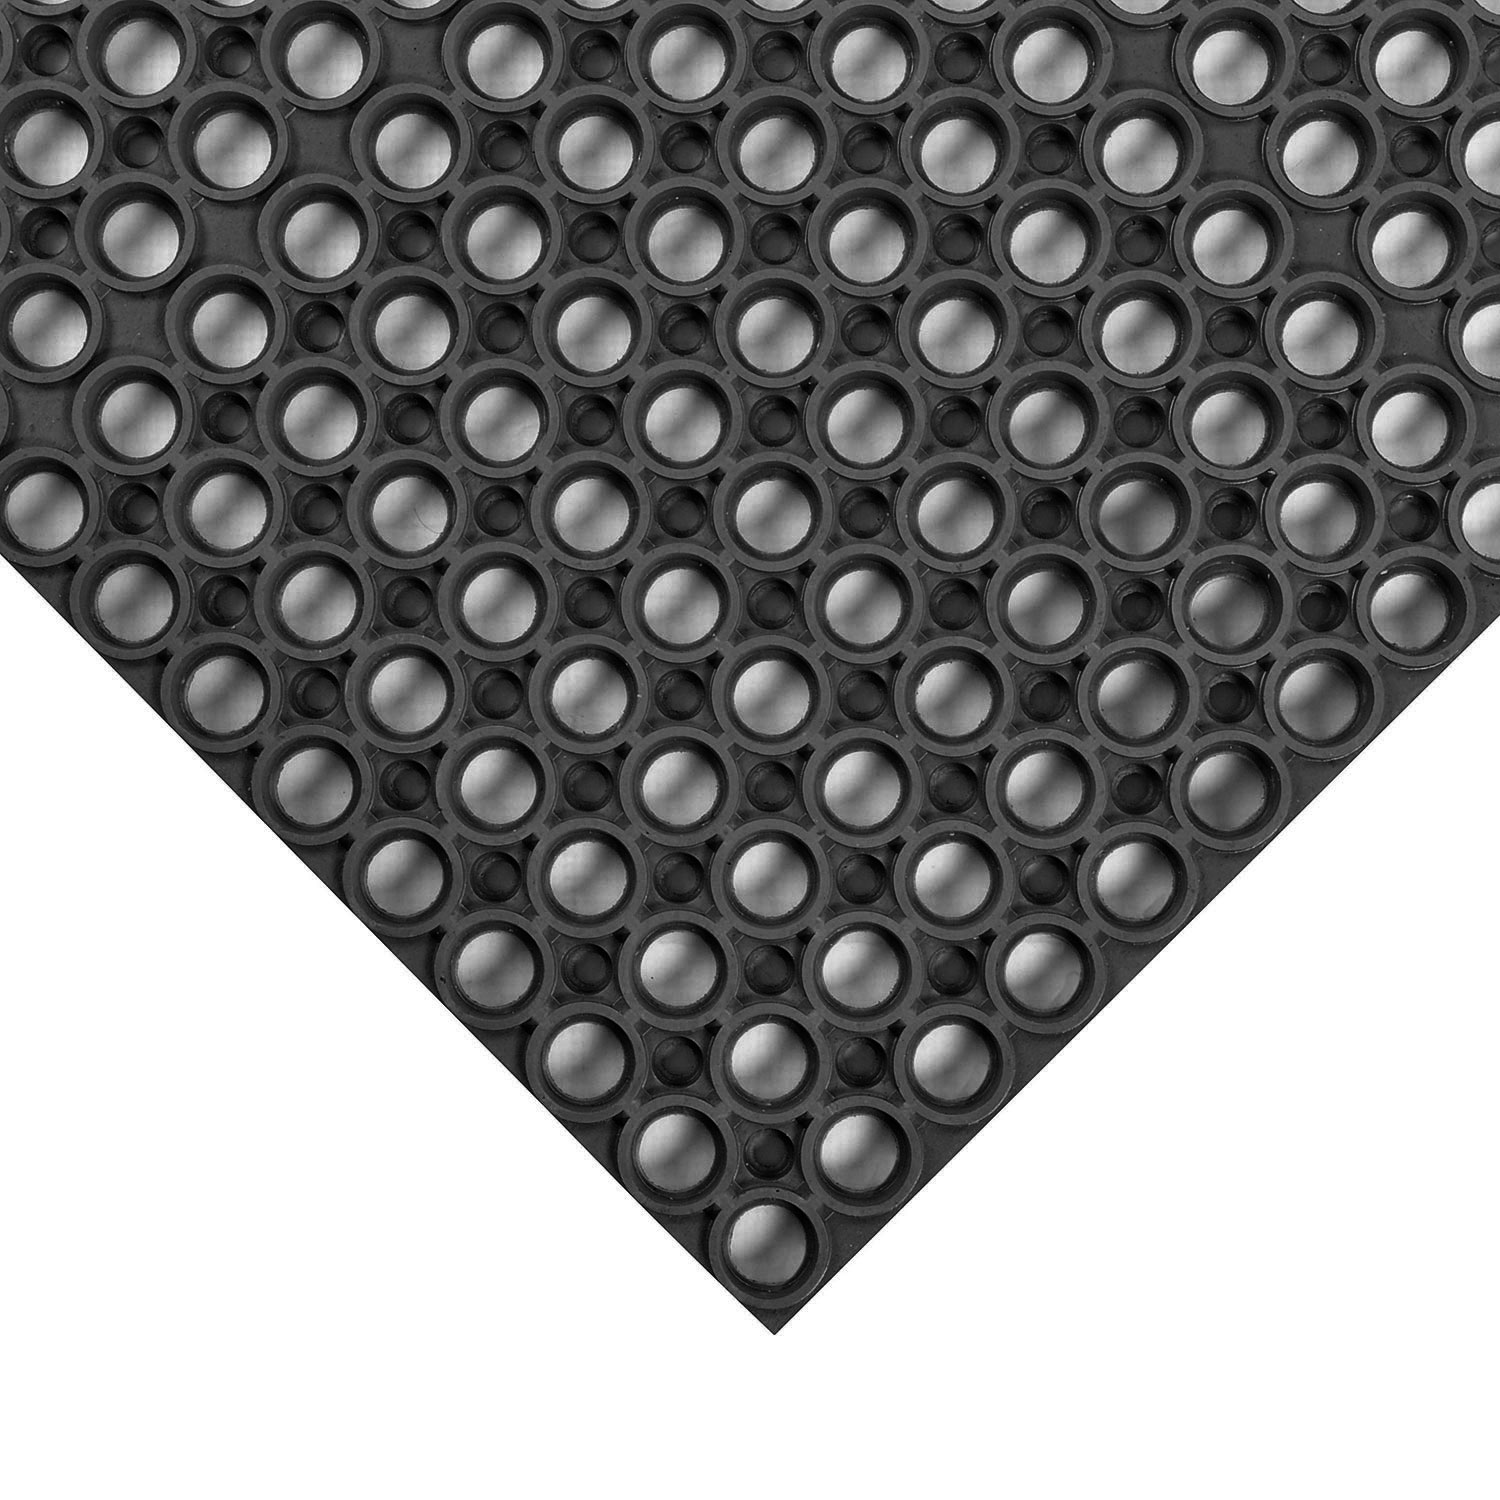 Notrax 065-340 Apex Challenger Anti-Fatigue Floor Mat - 3' x 5', Rubber, Black